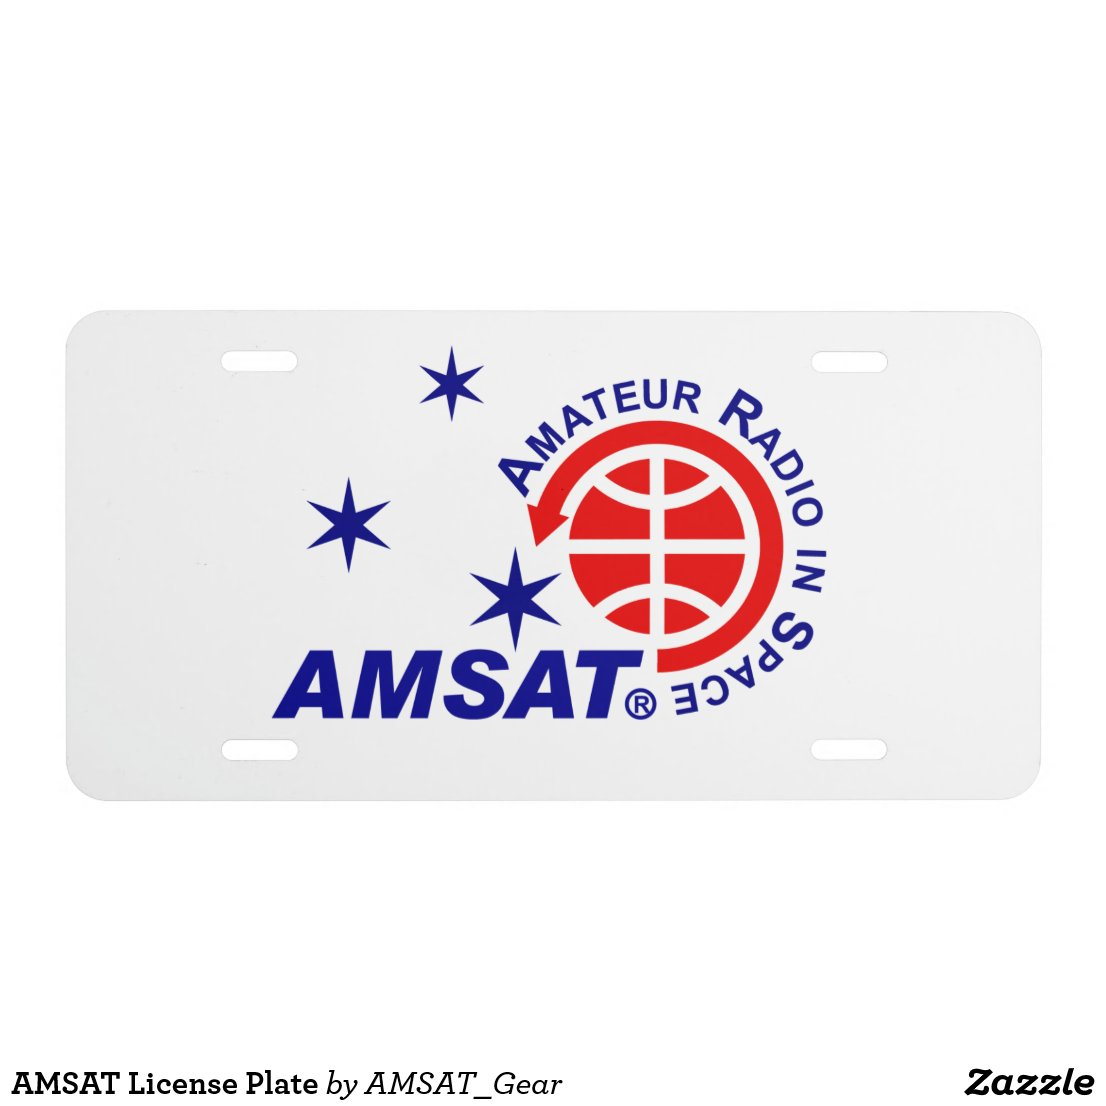 AMSAT License Plate